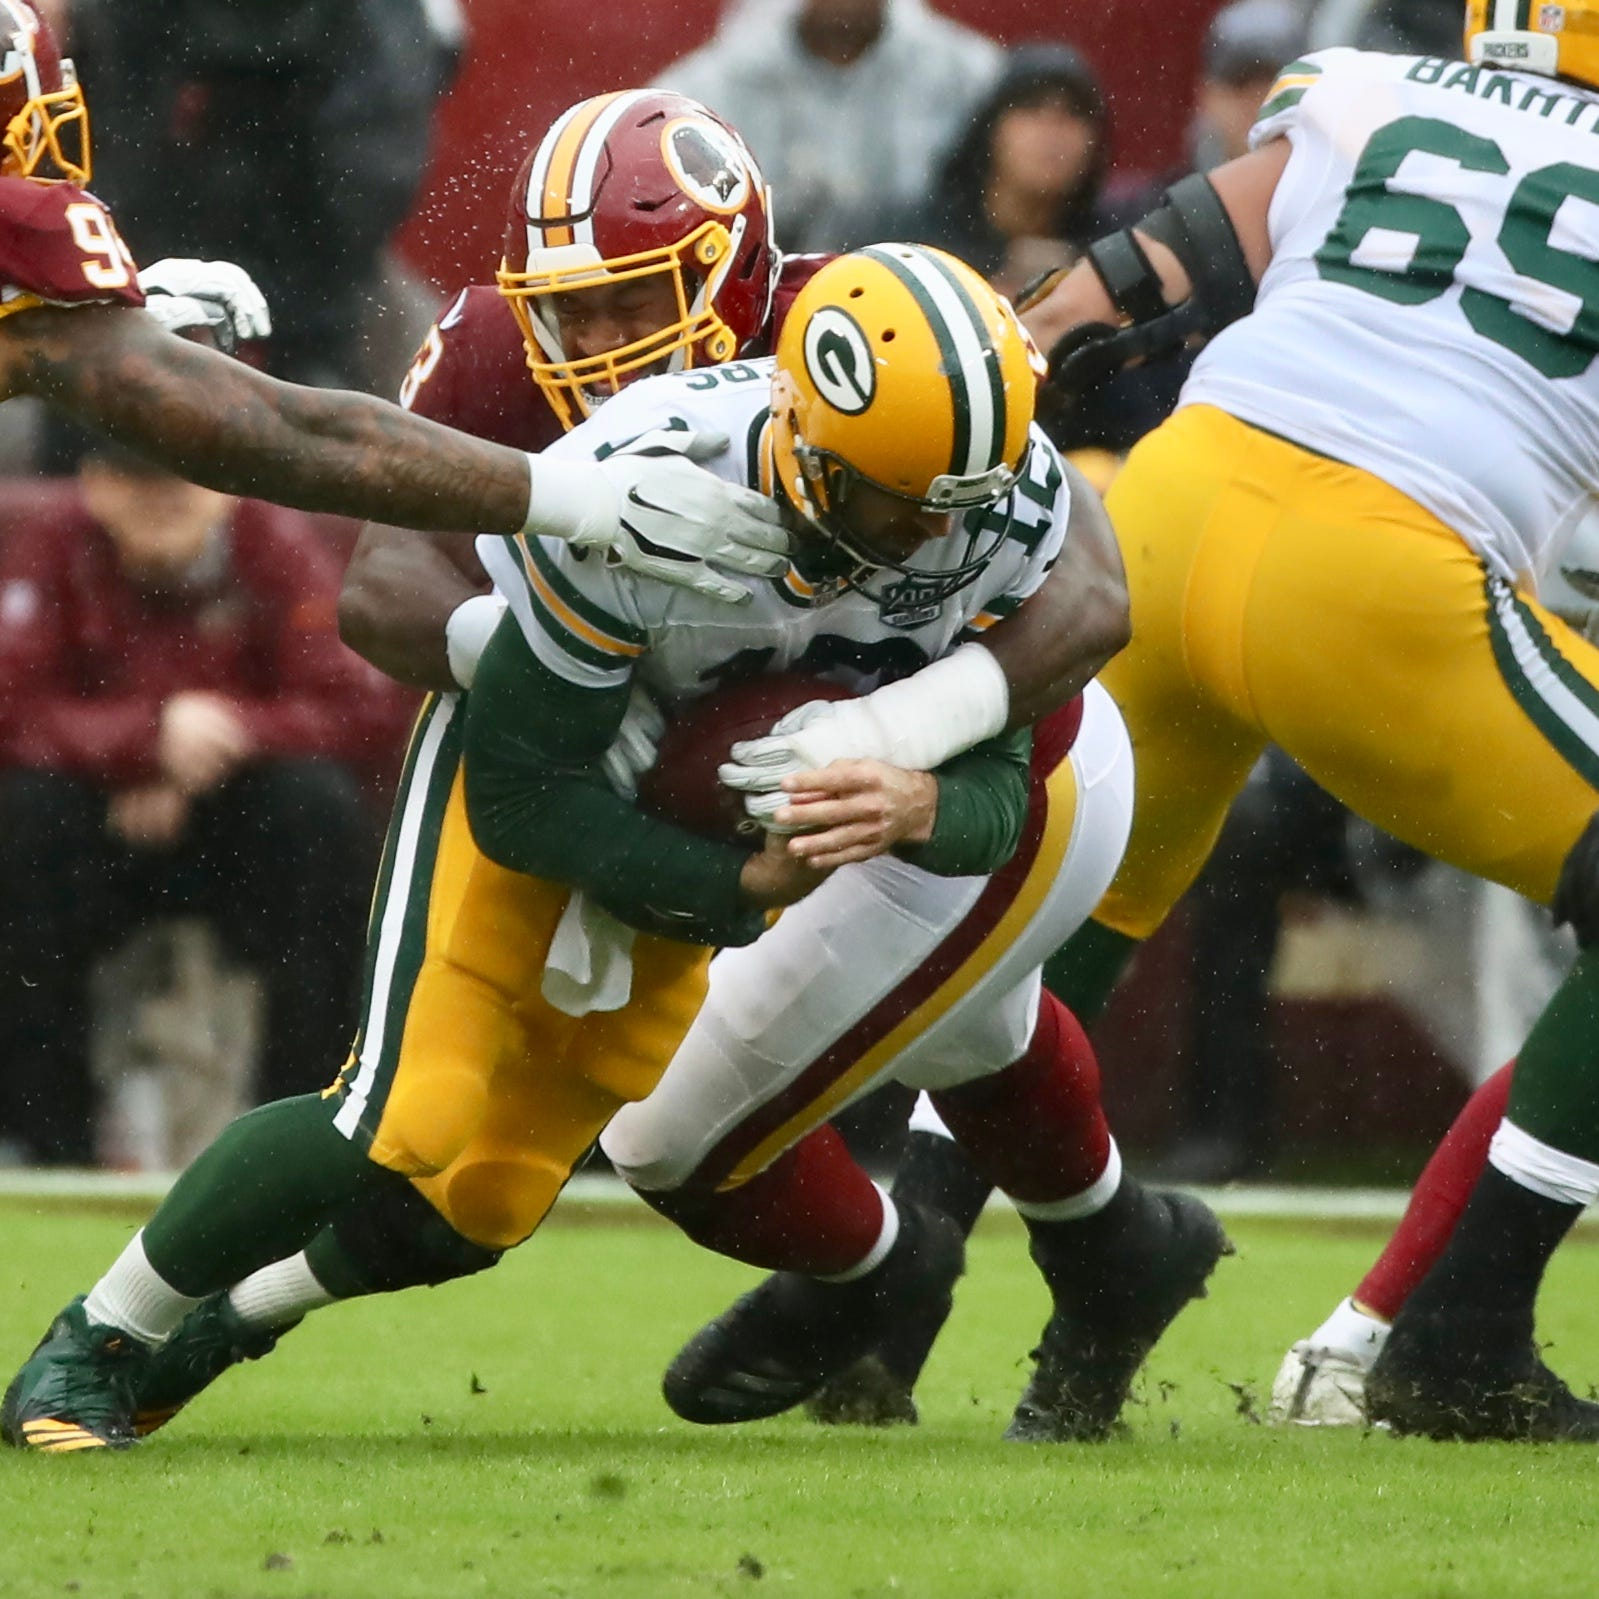 Quick takes: Penalties, drops pile up as listless Packers fall 31-17